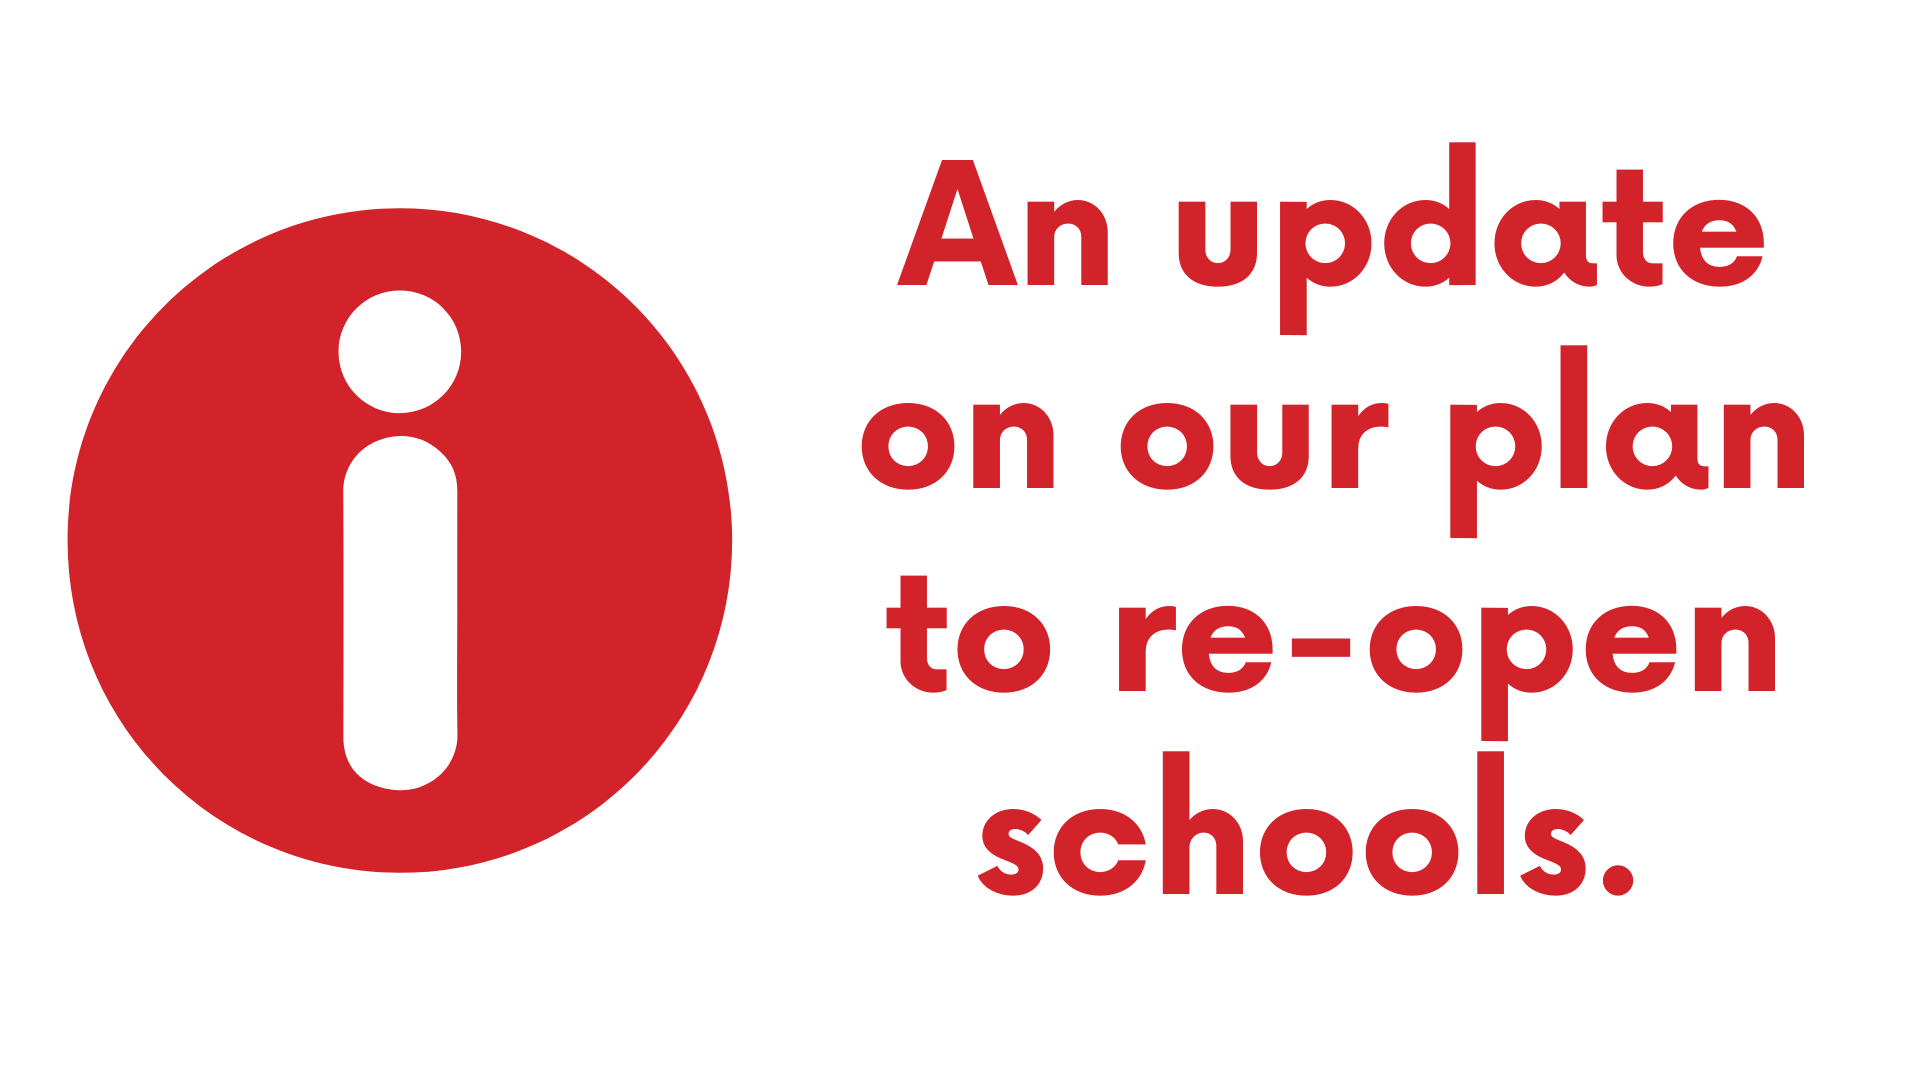 An update on our plan to re-open schools.png